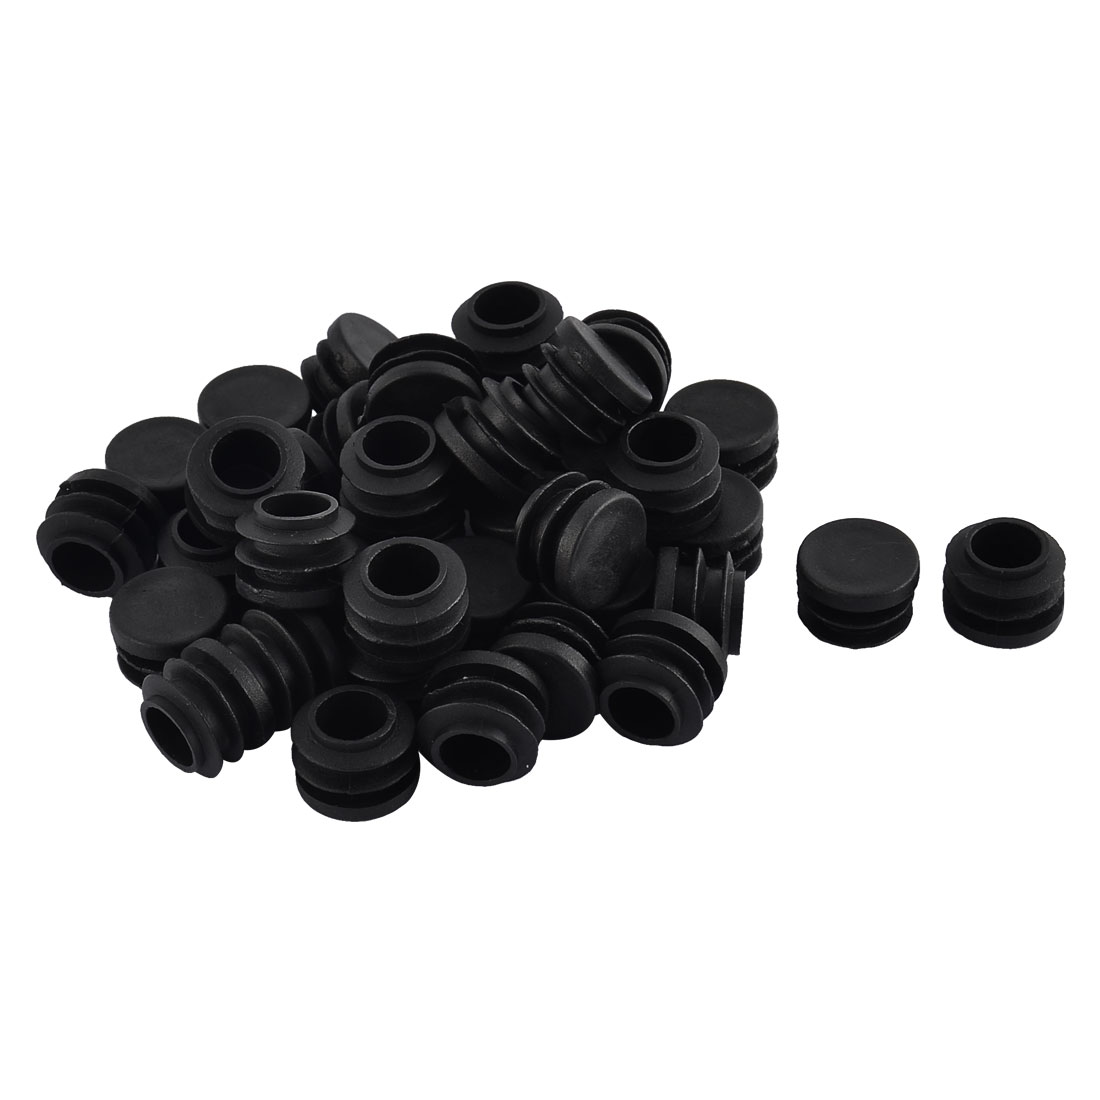 Furniture Table Chair Plastic Round Tube Pipe Insert Cap Cover Protector Black 19mm Dia 40pcs